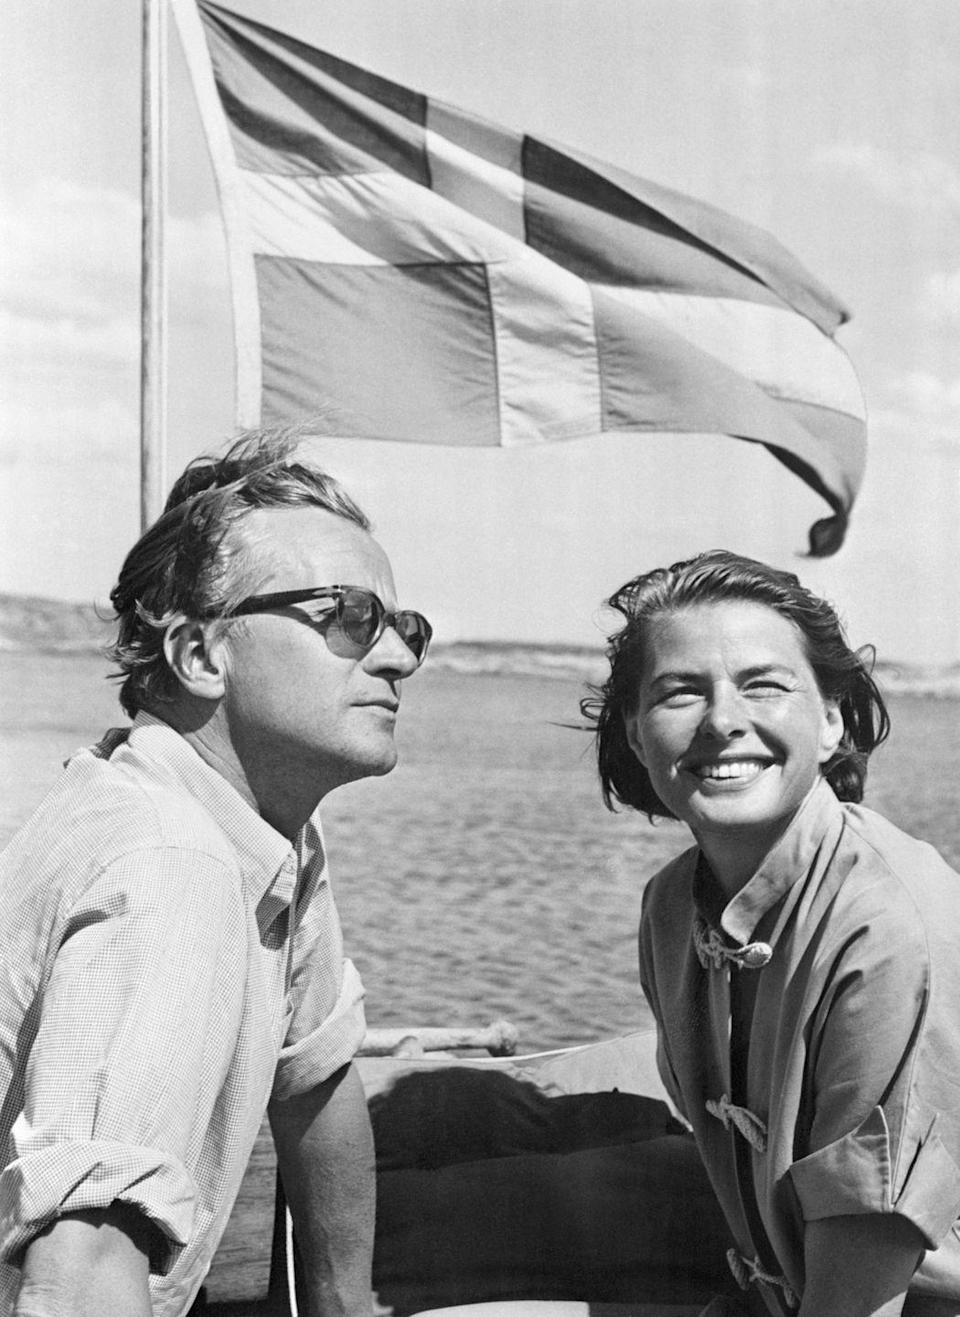 <p>Ingrid Bergman and her husband, Lars Schmidt, sit in front of the Swedish flag flying off the back of their sailboat, the Mayflower. The Swedish film star sports wind-blown hair and smiles for the camera in a cotton button-down. </p>